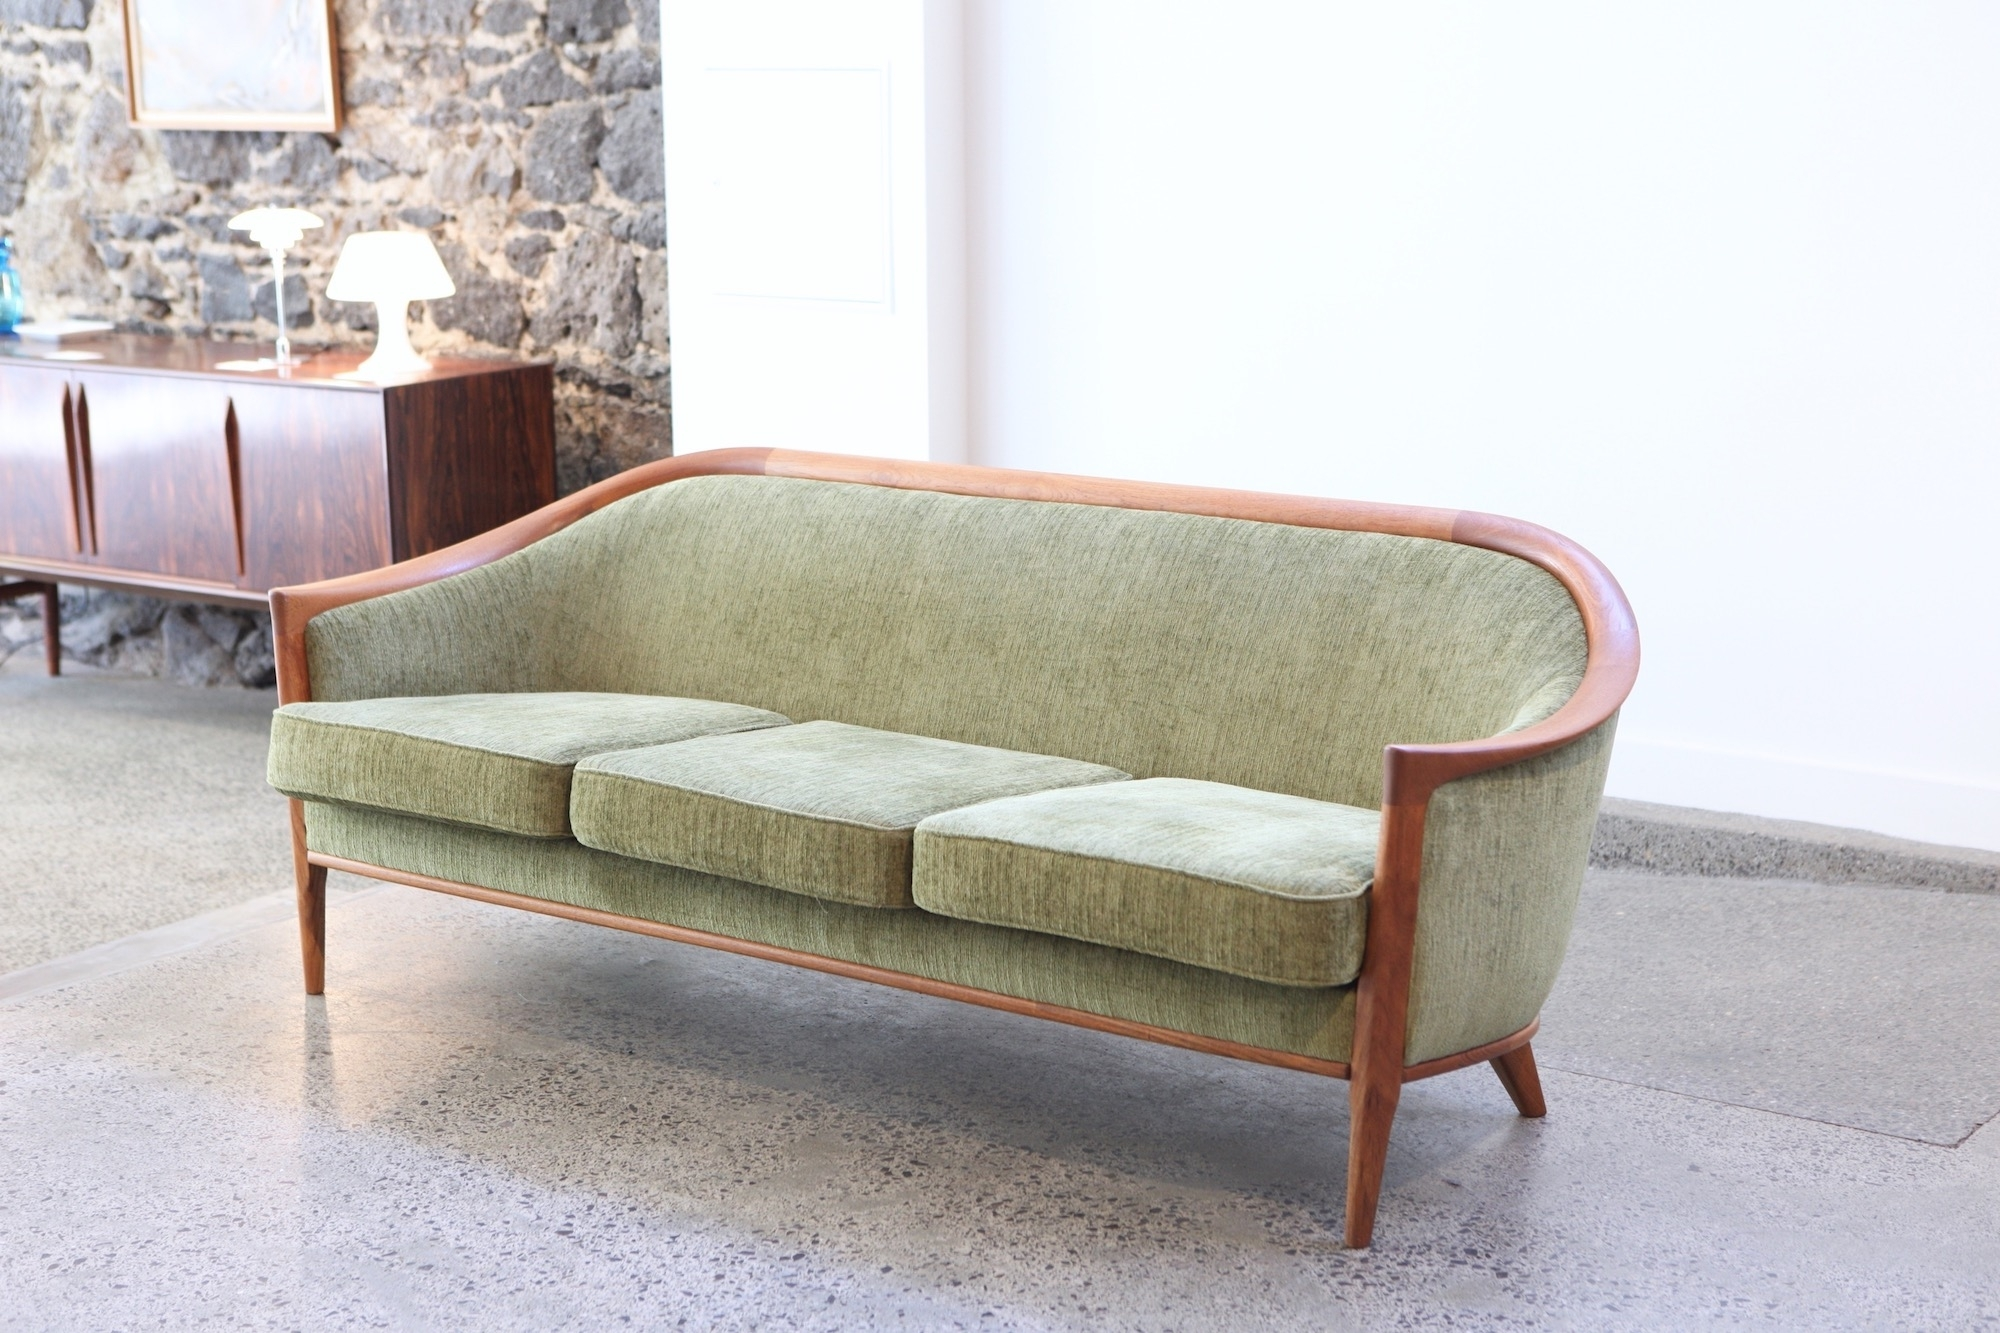 Vintage Sofas – Radar Intended For Recent Vintage Sofas (View 5 of 20)